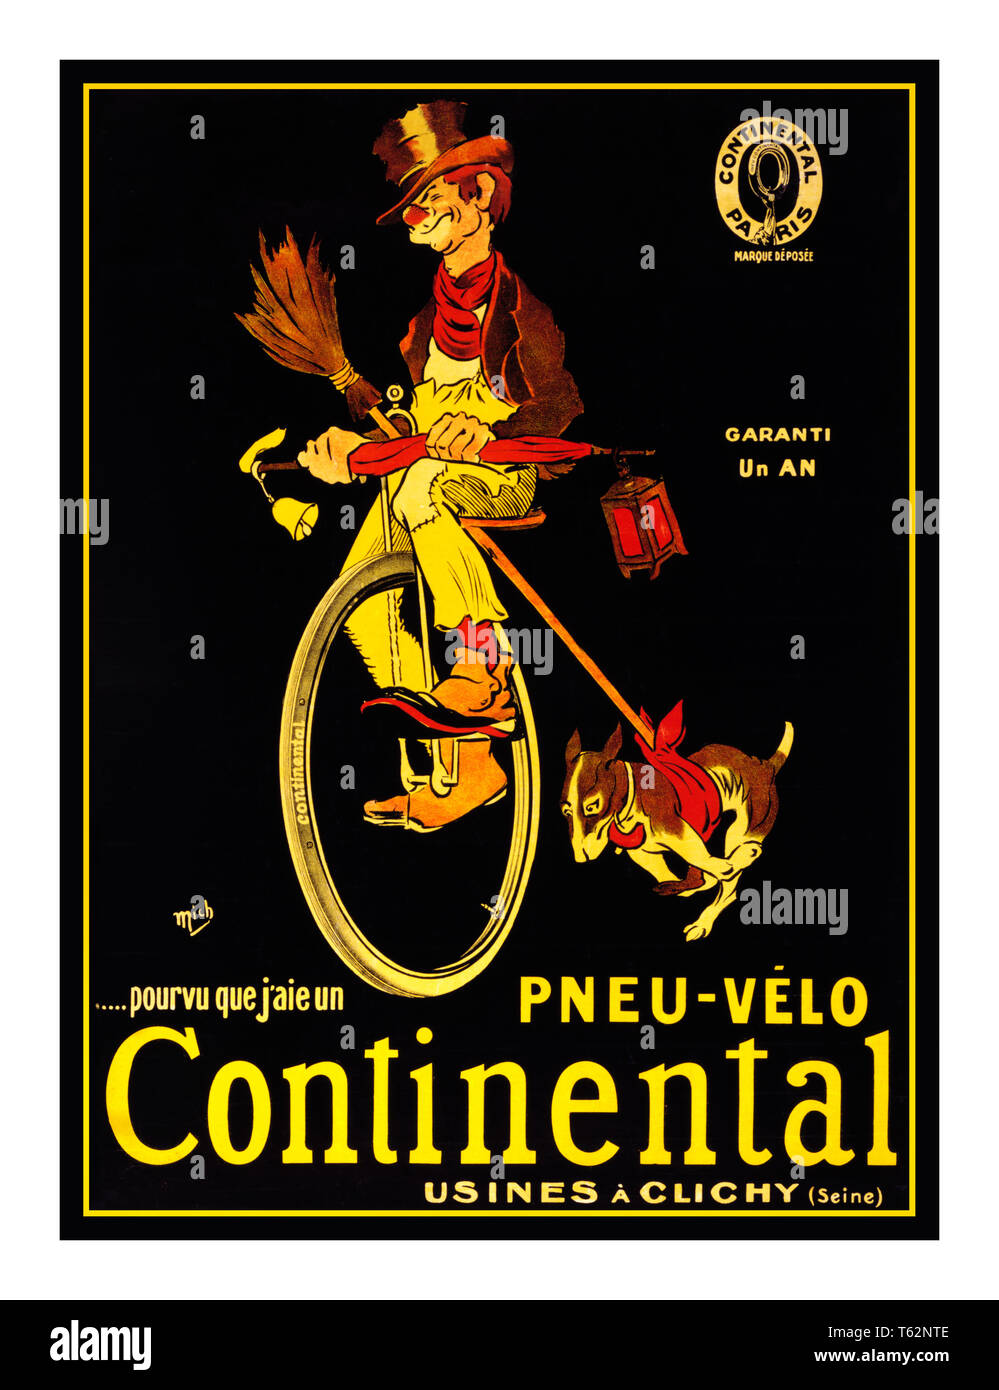 Vintage 1900's advertising poster for Continental Tyres in France..Pourvu que j'aie un pneu-vélo Continental. Garanti un an. Usines à Clichy (Seine). 'If I only had a Continental bicycle tire.' Advertising poster for Continental tires showing a hobo on a unicycle with his dog running beside  c1900s - Stock Image